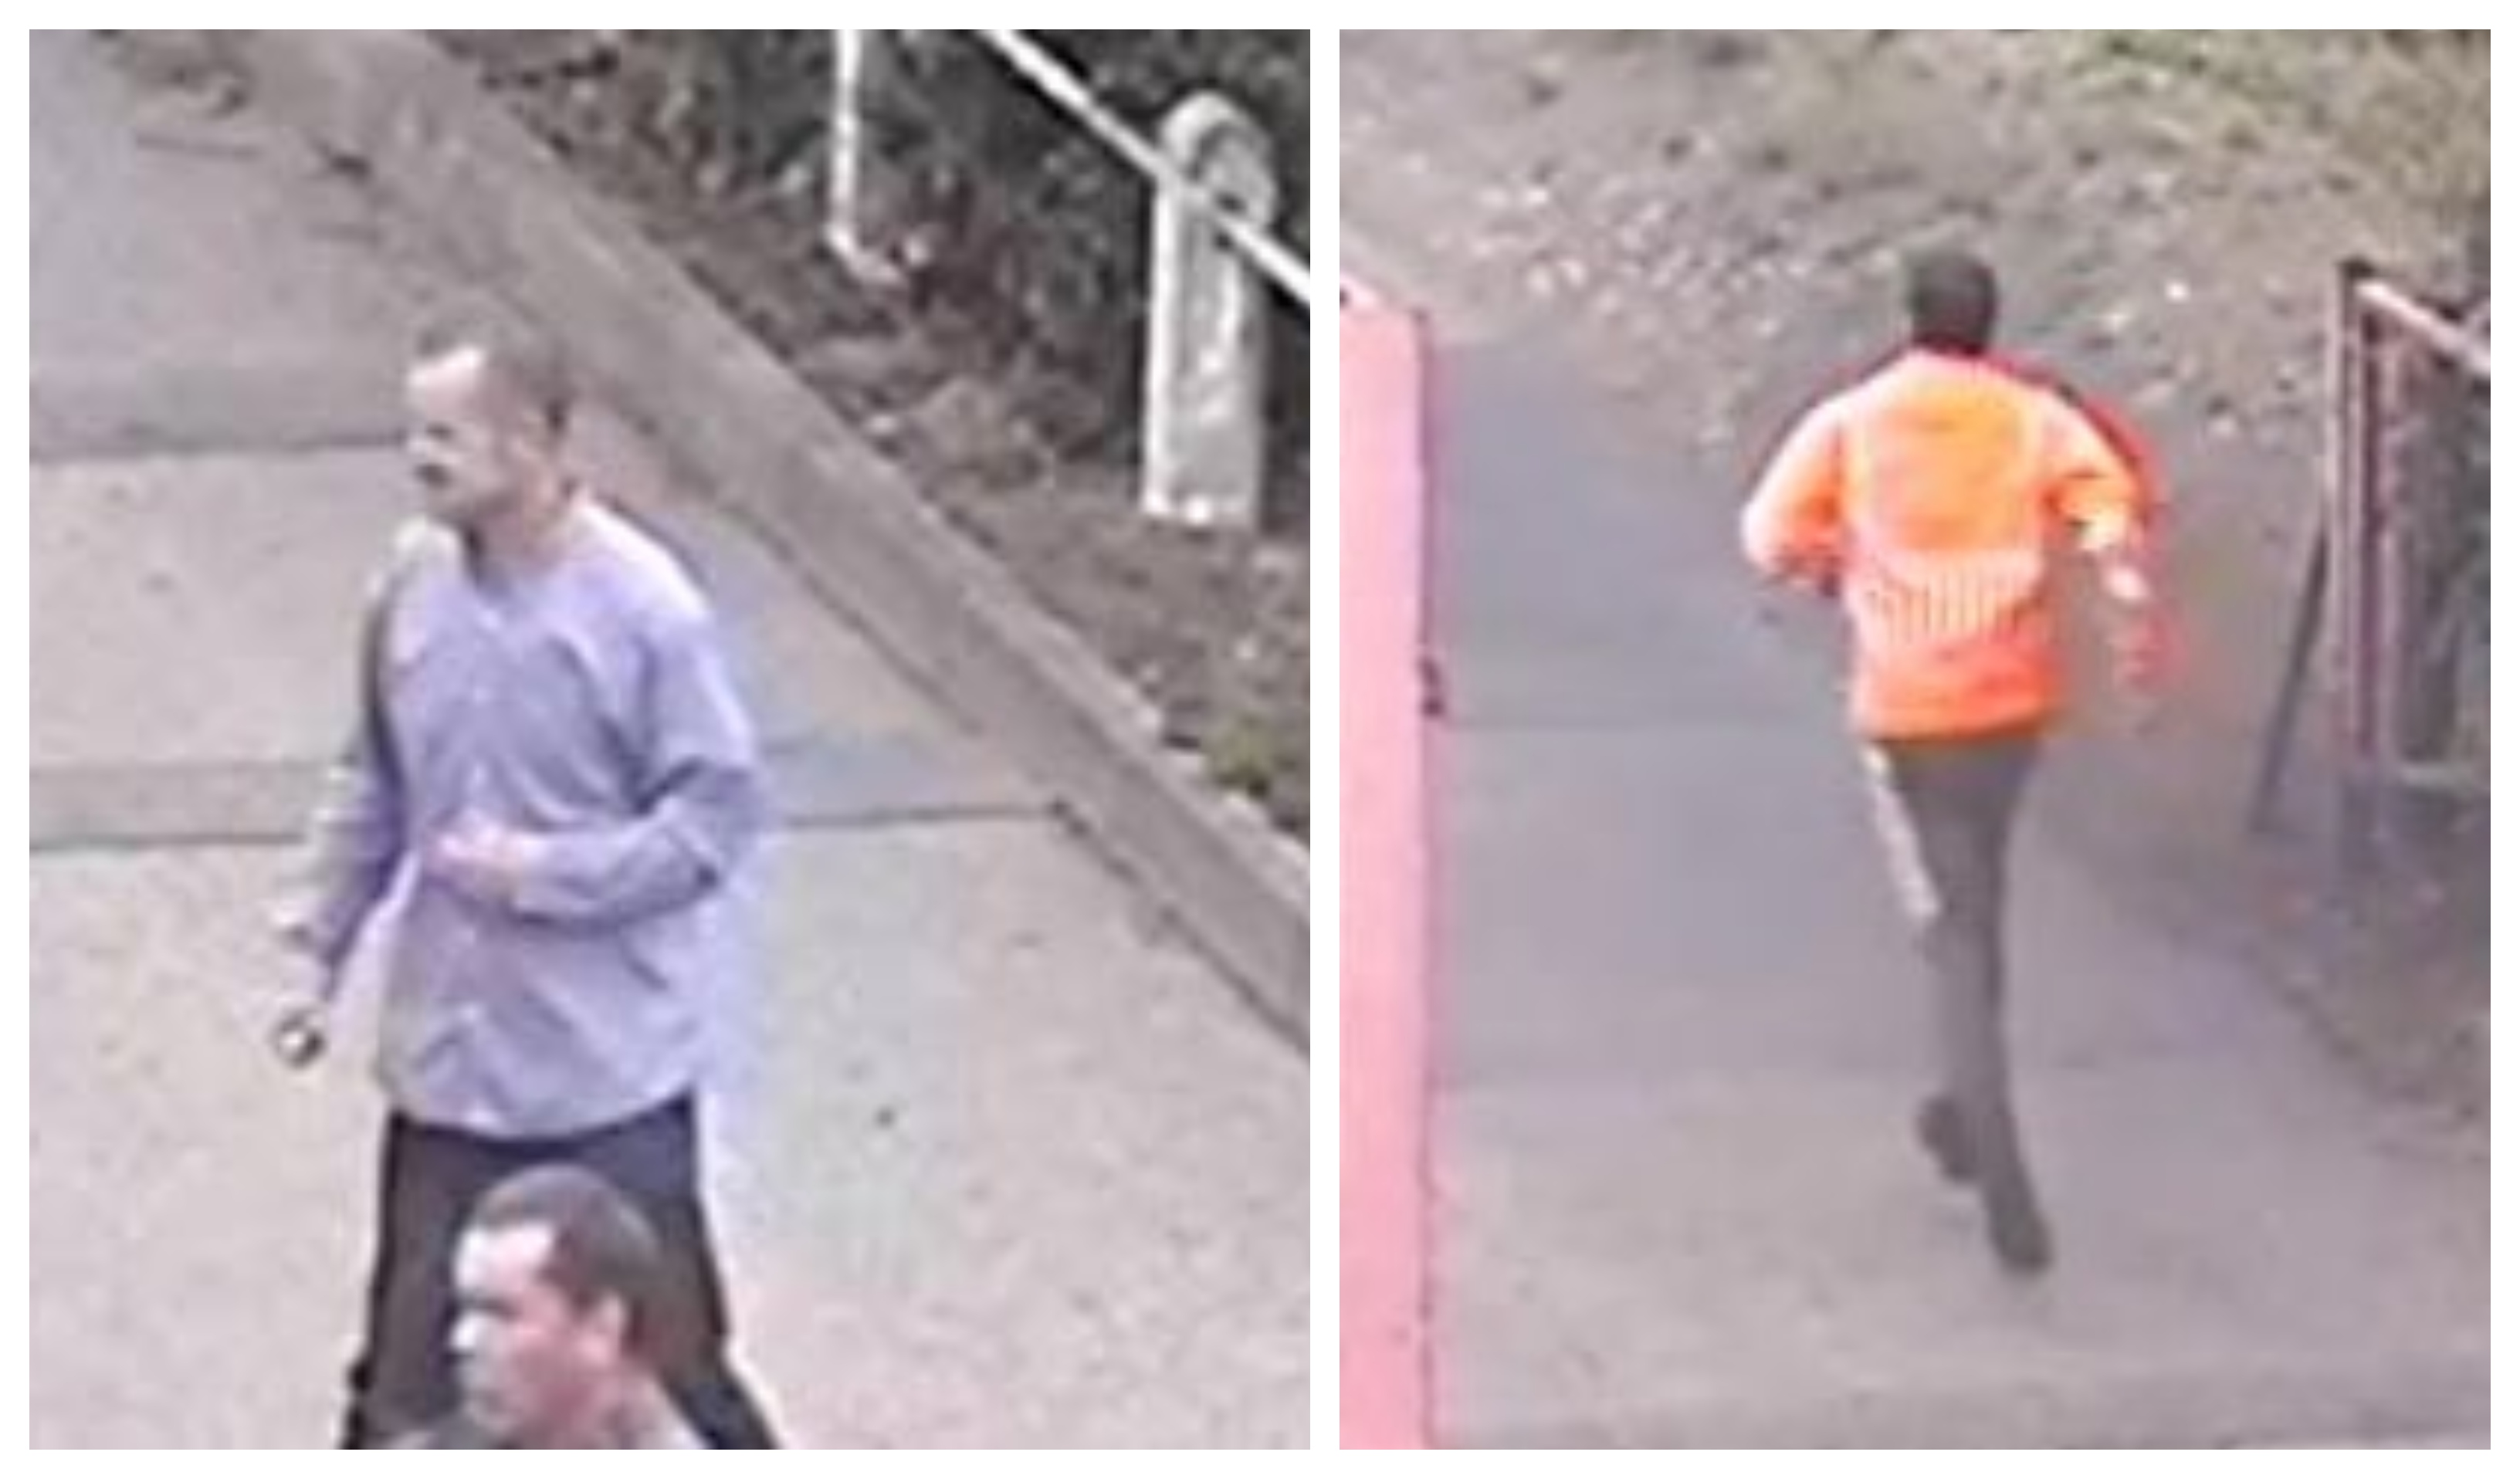 CCTV images released by police show Donald Stewart Snr, 47, and Donald Stewart Jnr, 24